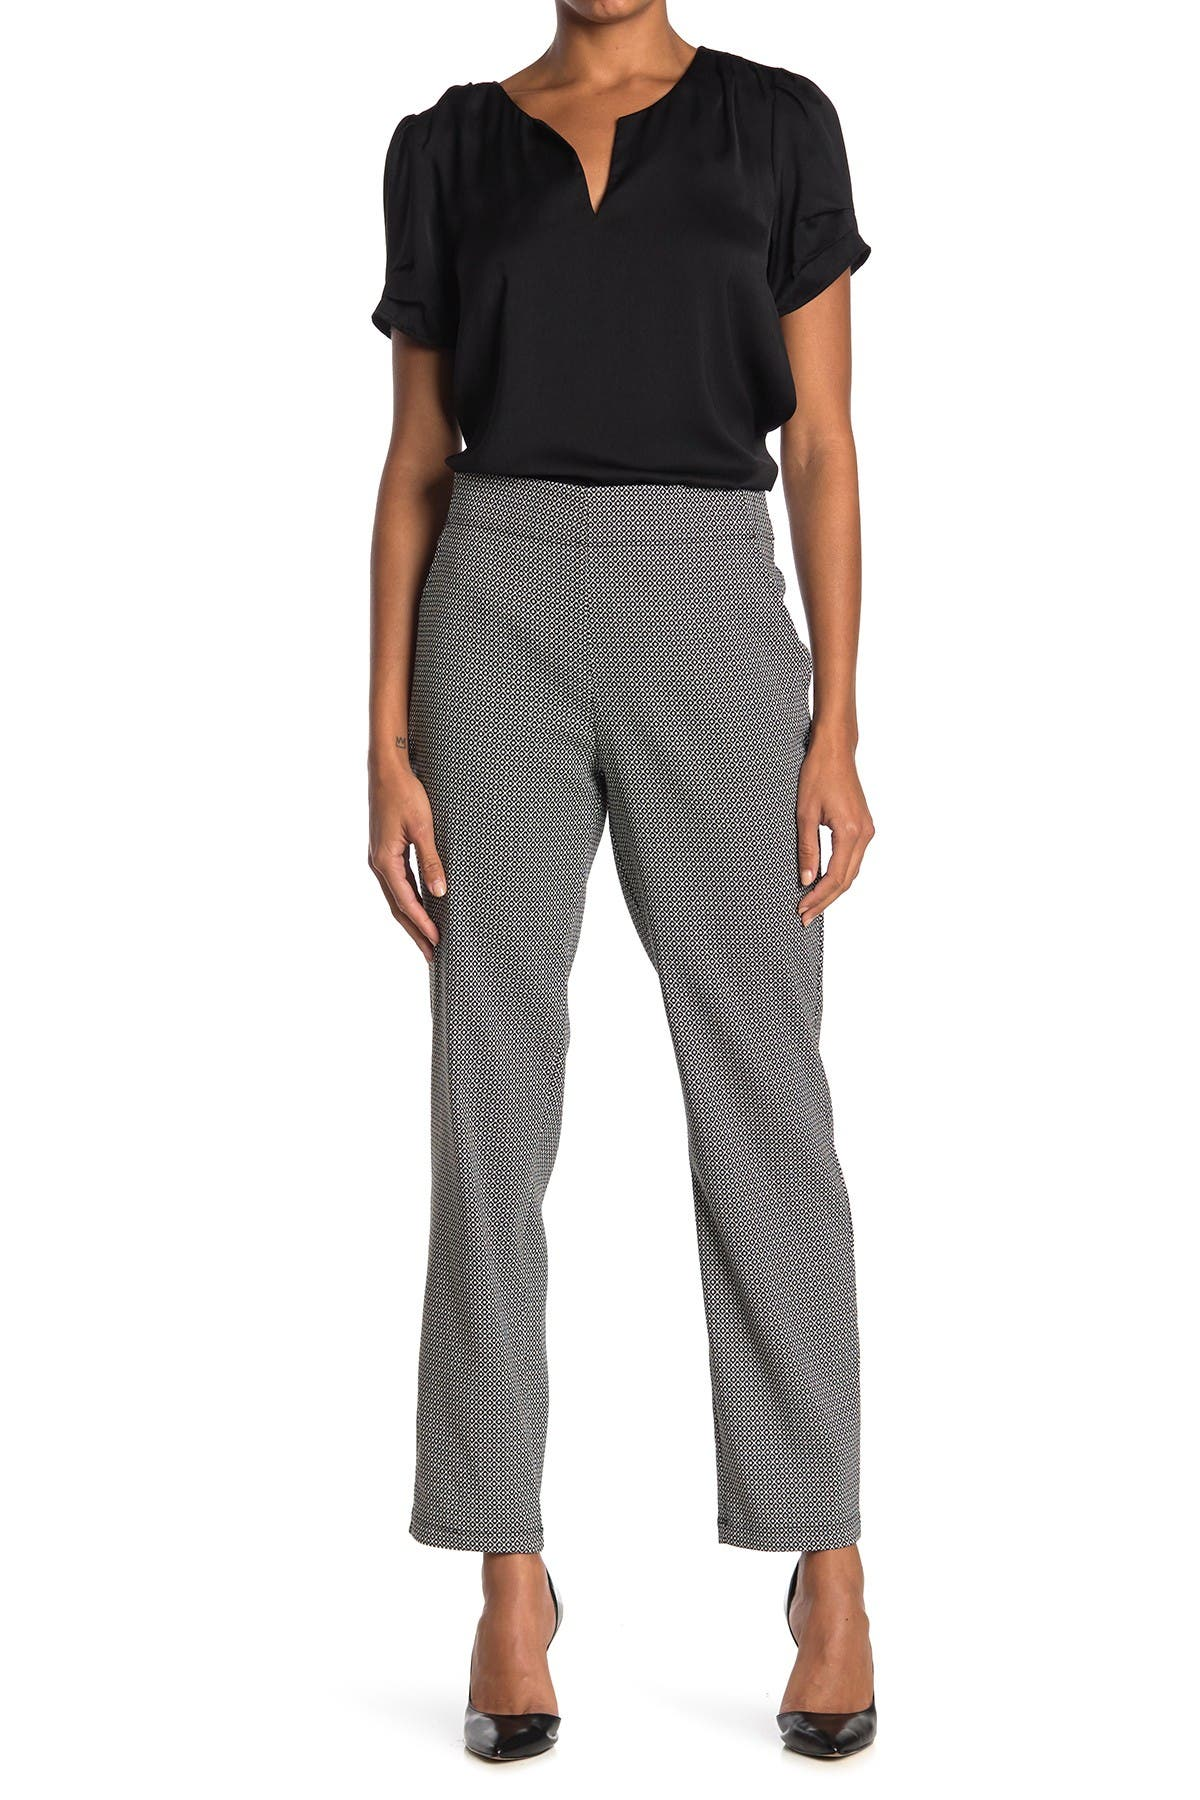 Image of Max Studio High Waist Pull-On Stretch Knit Pants